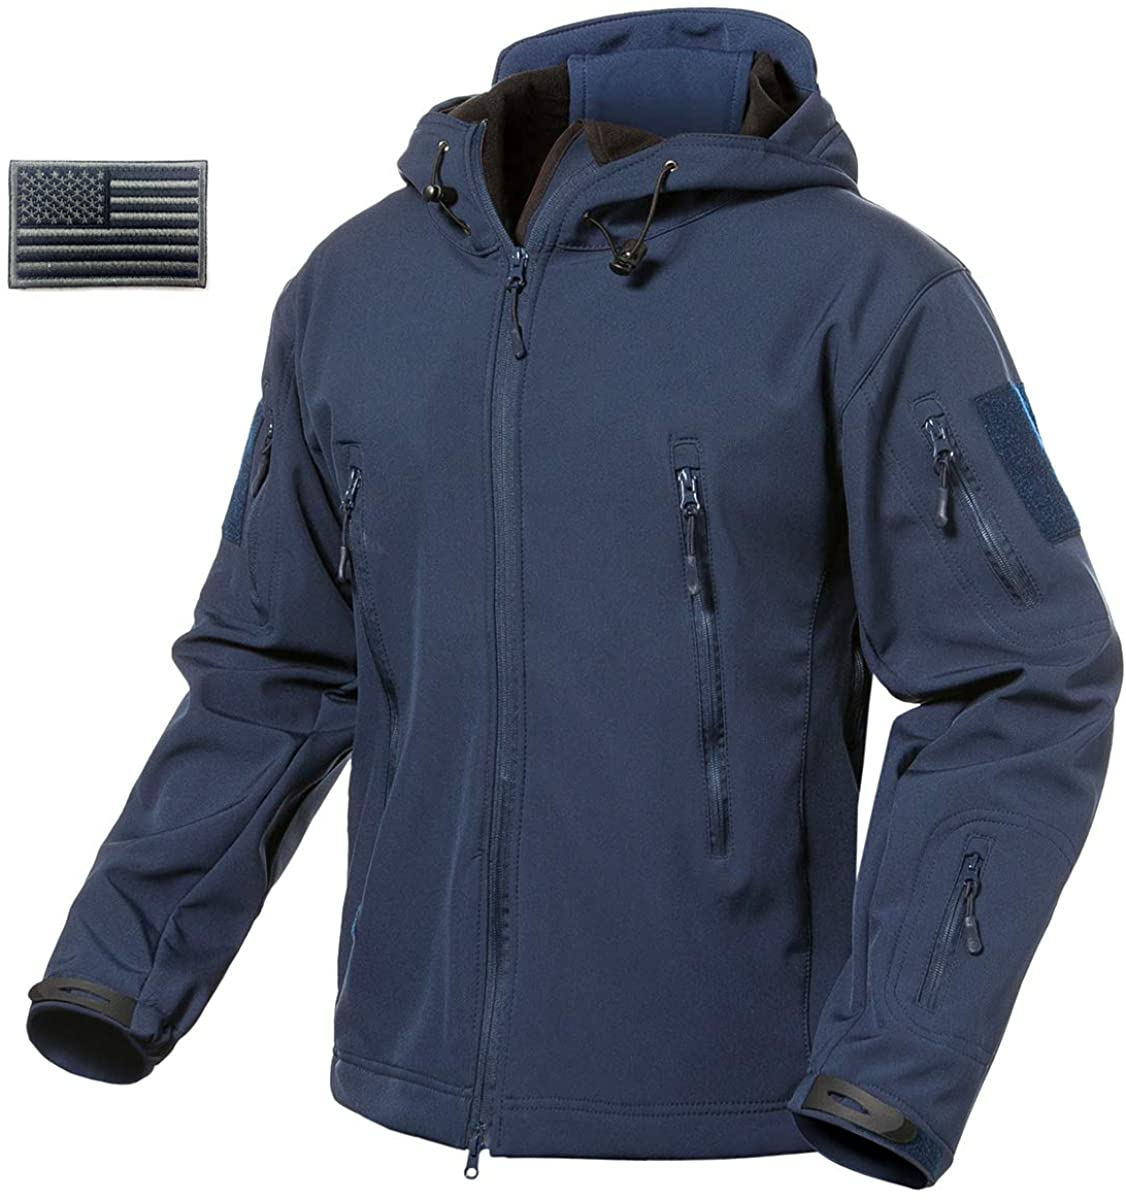 ReFire Gear Mens Army Special Ops Military Tactical Jacket Softshell Fleece Hooded Outdoor Coat